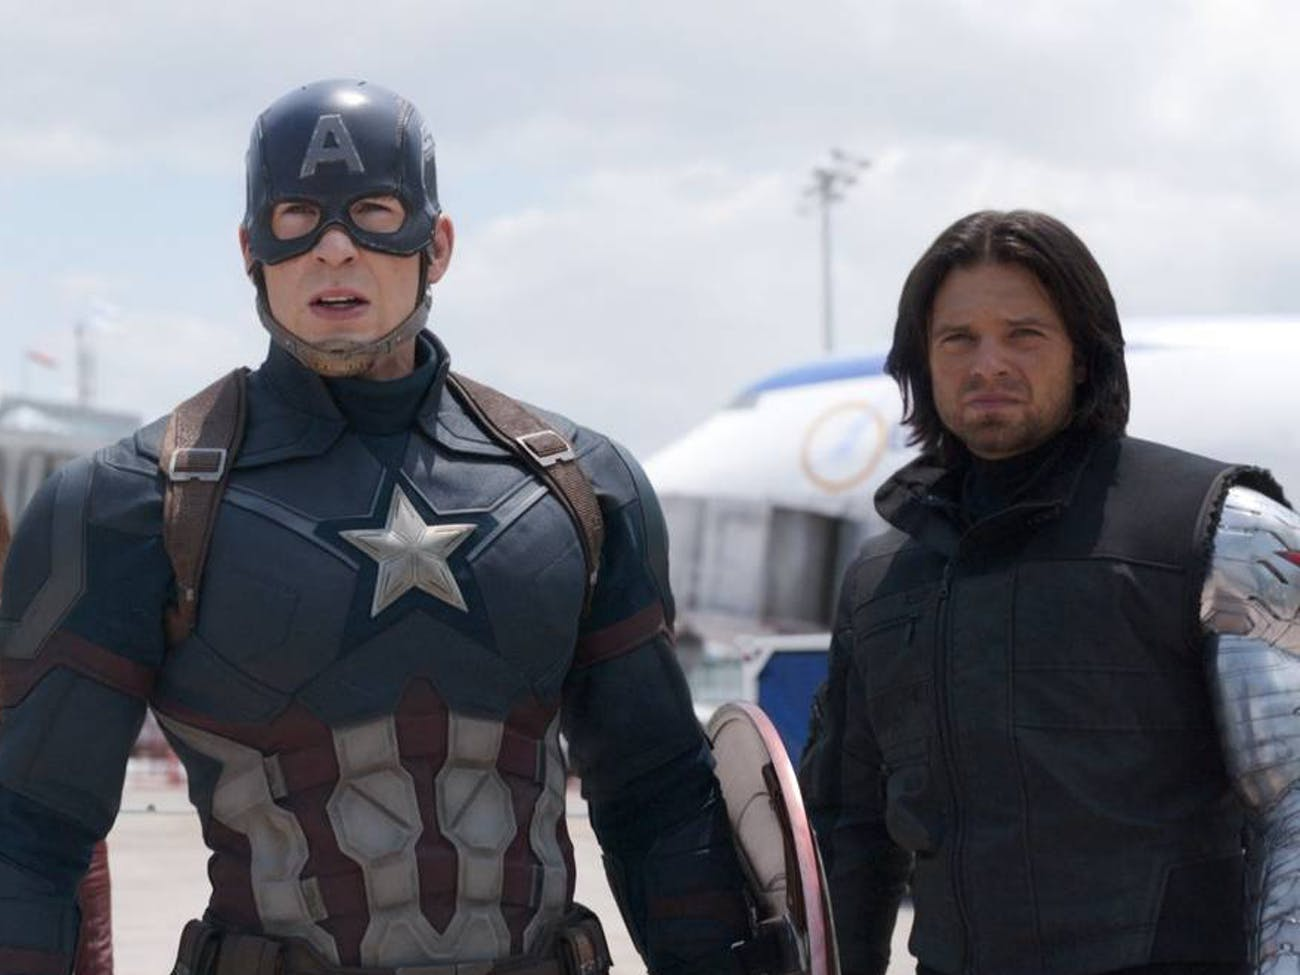 Avengers Endgame' Ending Explained: Did Bucky Always Know Cap's Big